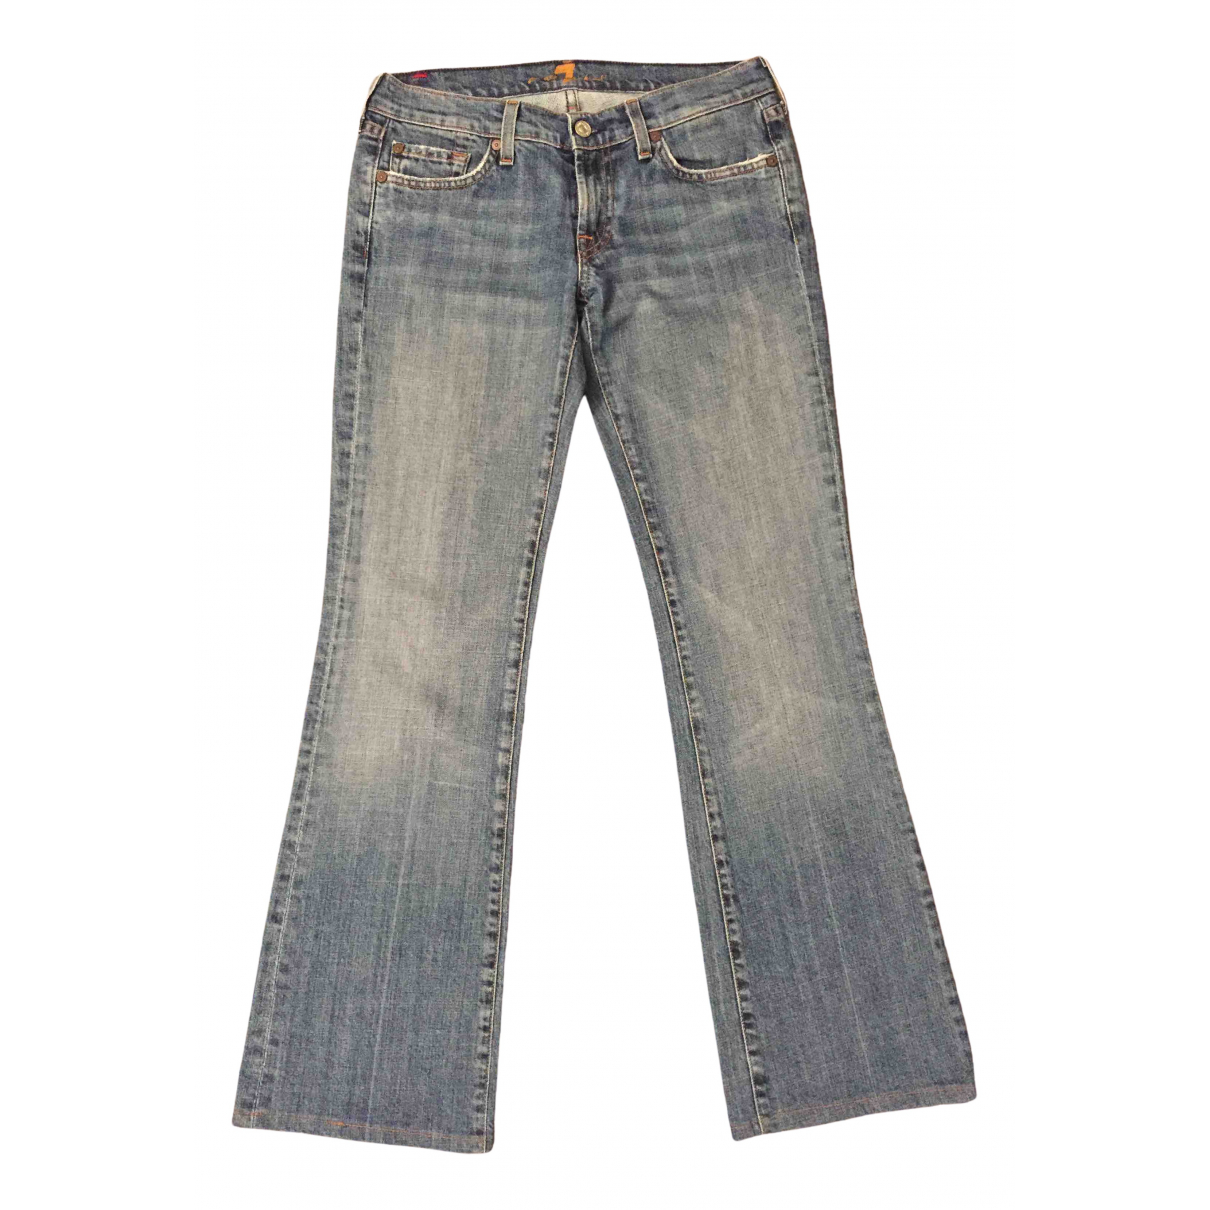 7 For All Mankind \N Blue Denim - Jeans Trousers for Women 42 IT